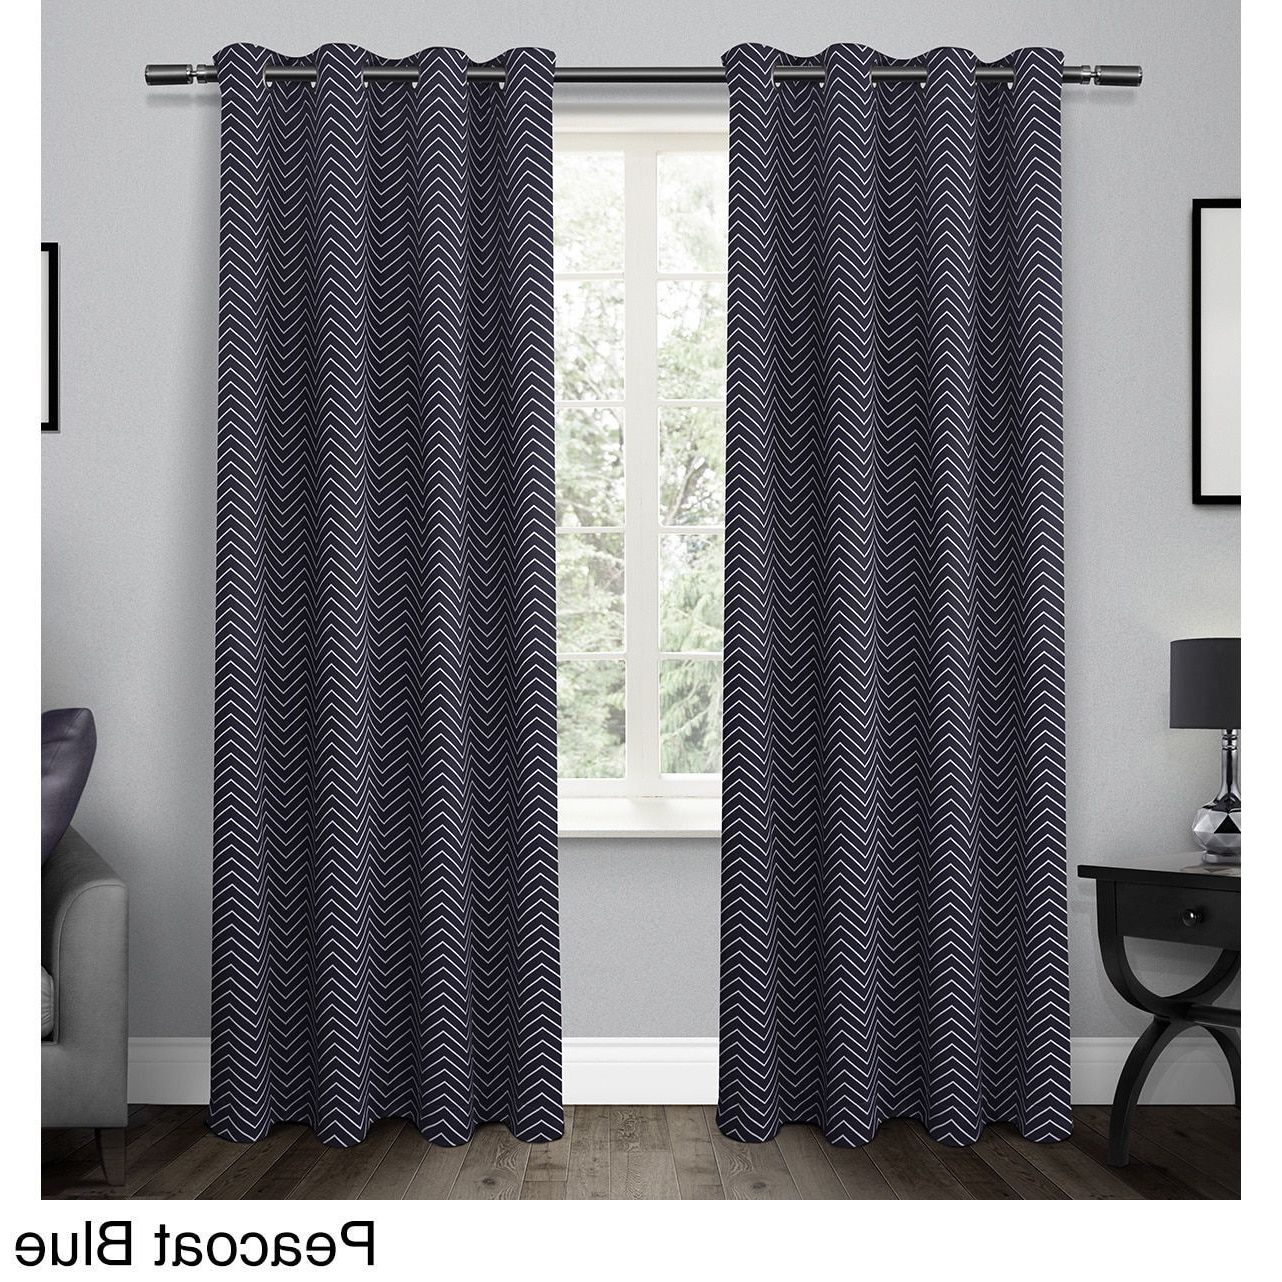 Ati Home Chevron Thermal Woven Blackout Grommet Top Curtain Inside Most Recently Released Chevron Blackout Grommet Curtain Panels (View 14 of 20)